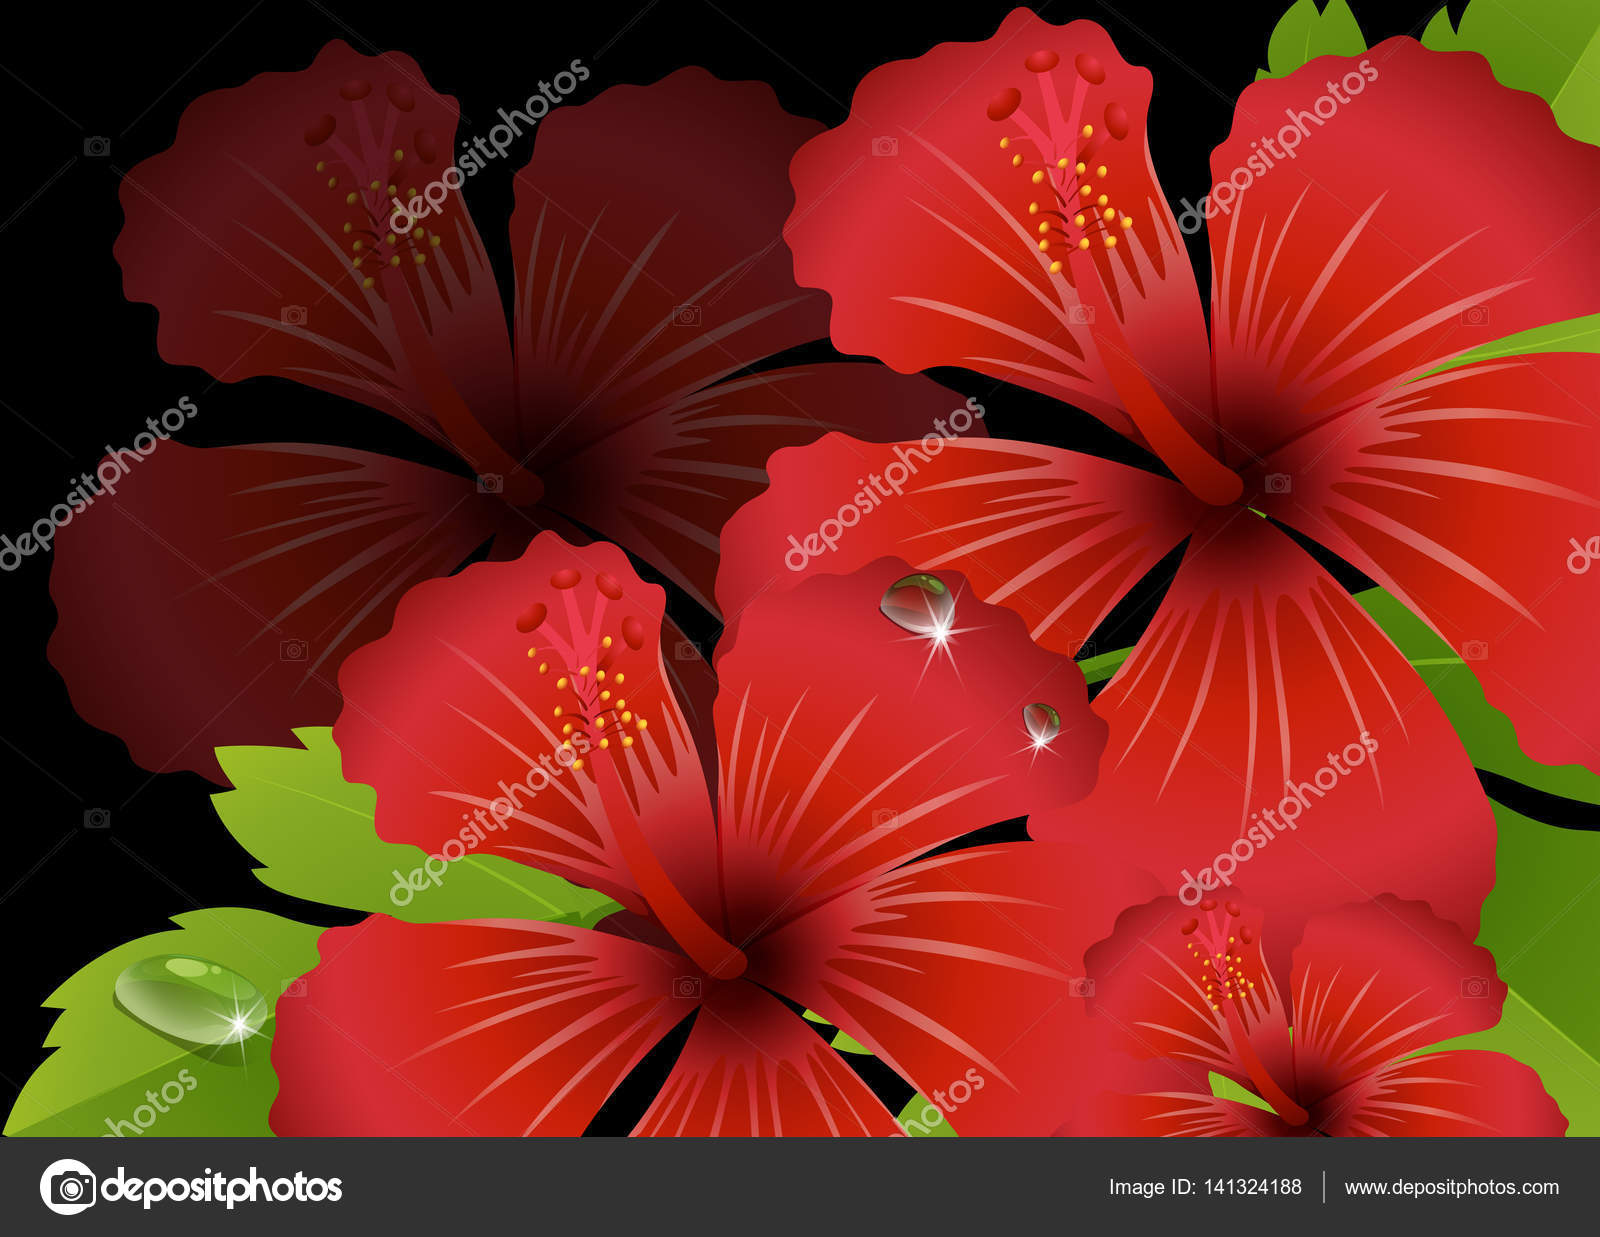 Red hibiscus flowers with black background stock vector red hibiscus flowers with black background stock vector izmirmasajfo